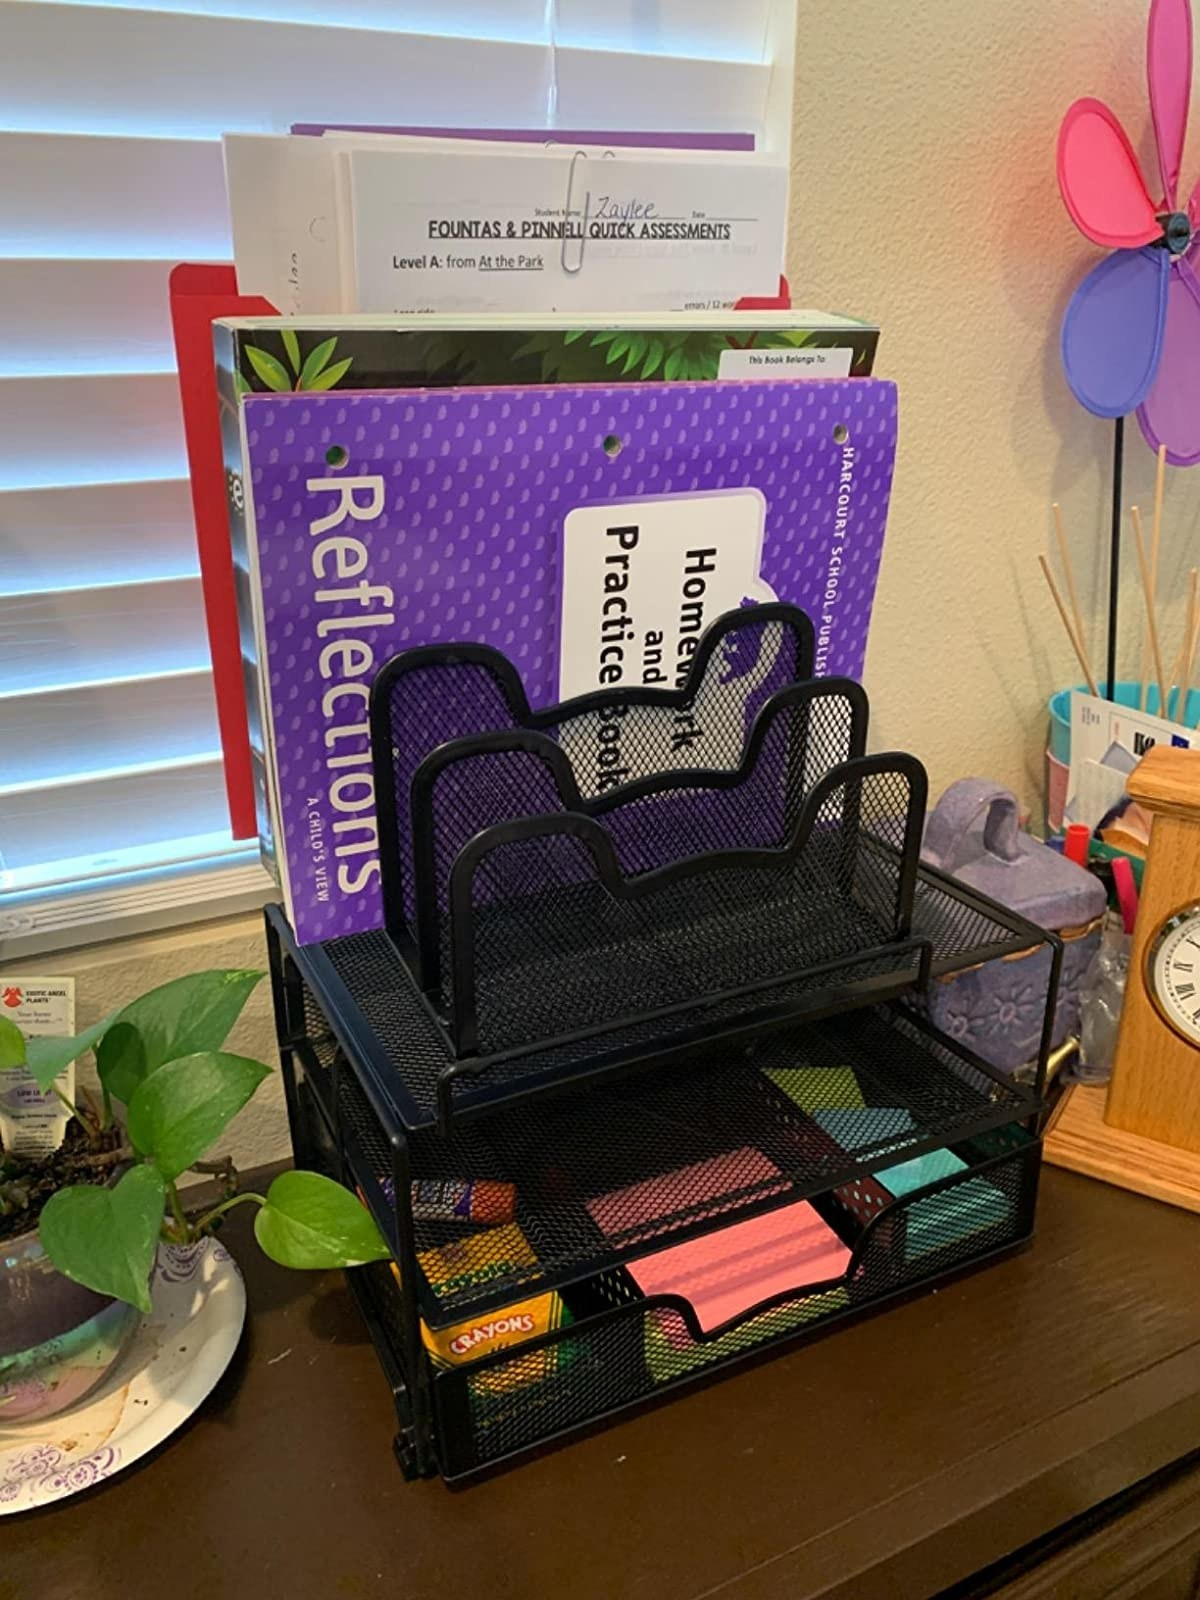 A reviewer's organizer with an assortment of desk supplies inside